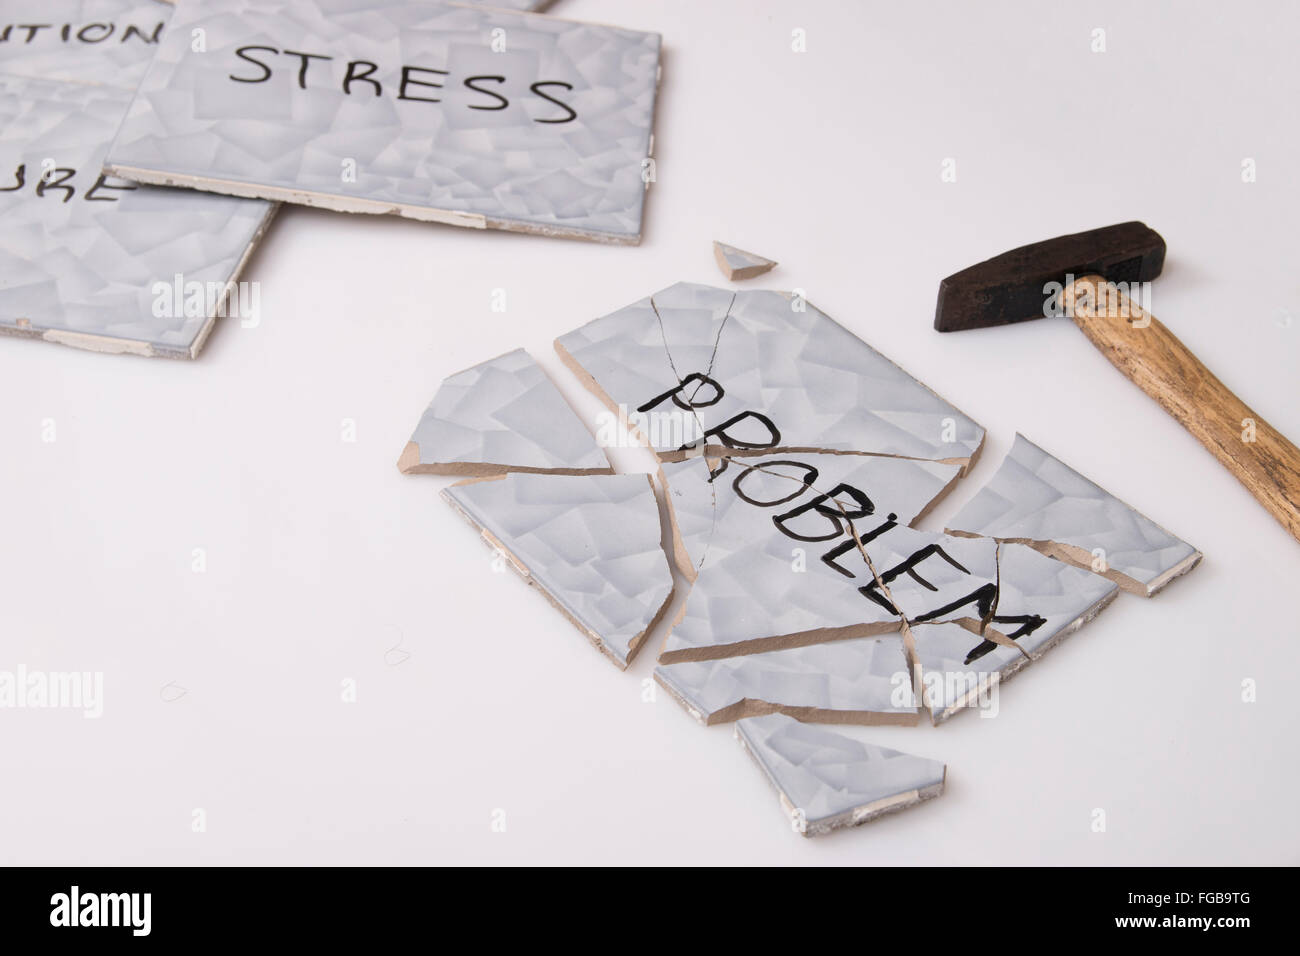 overcome problem - Stock Image